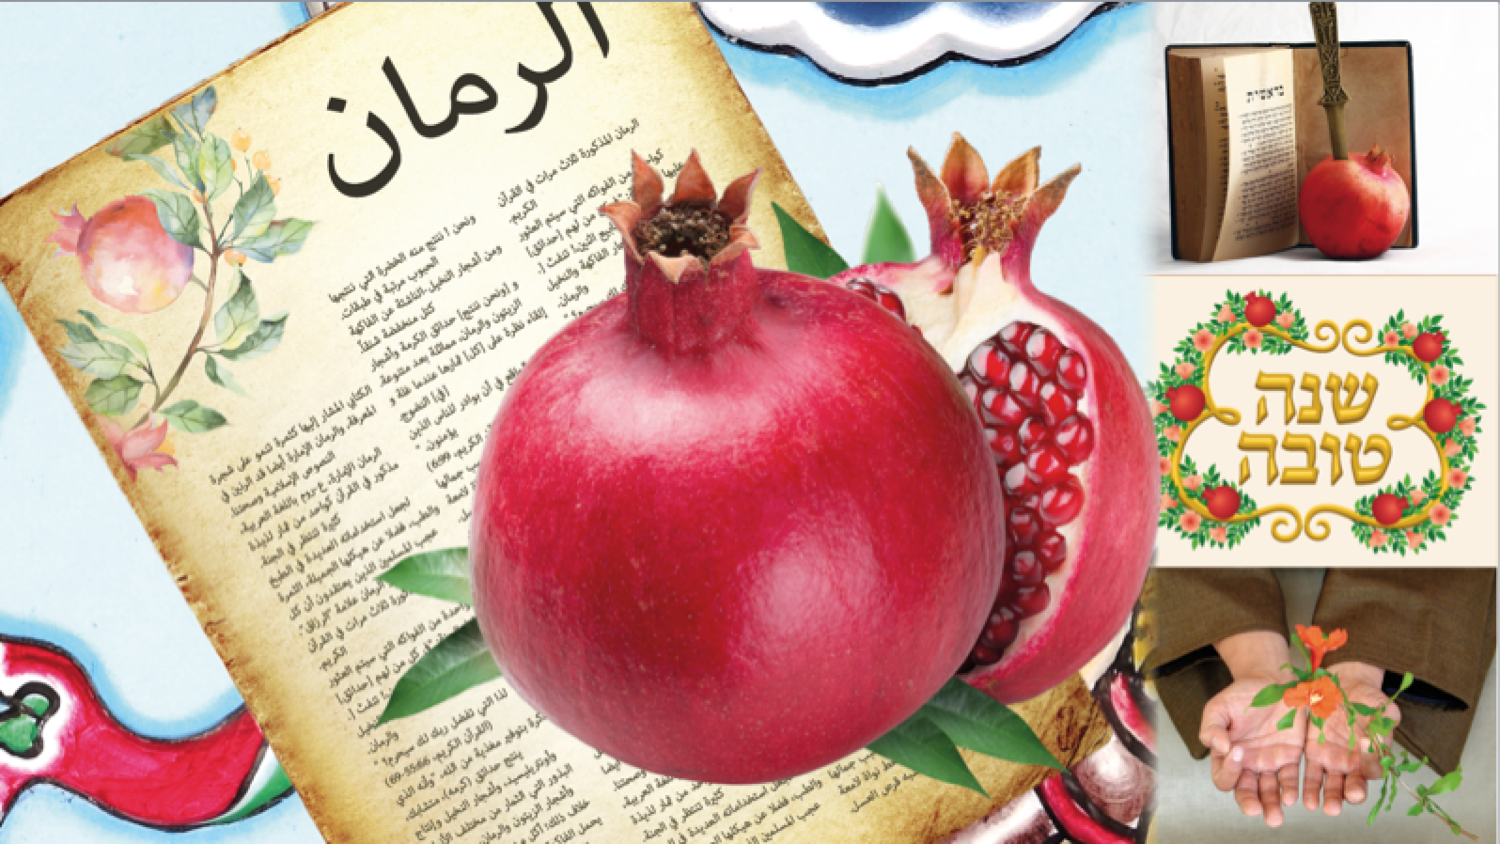 The Significance Of The Pomegranate Foodfaith